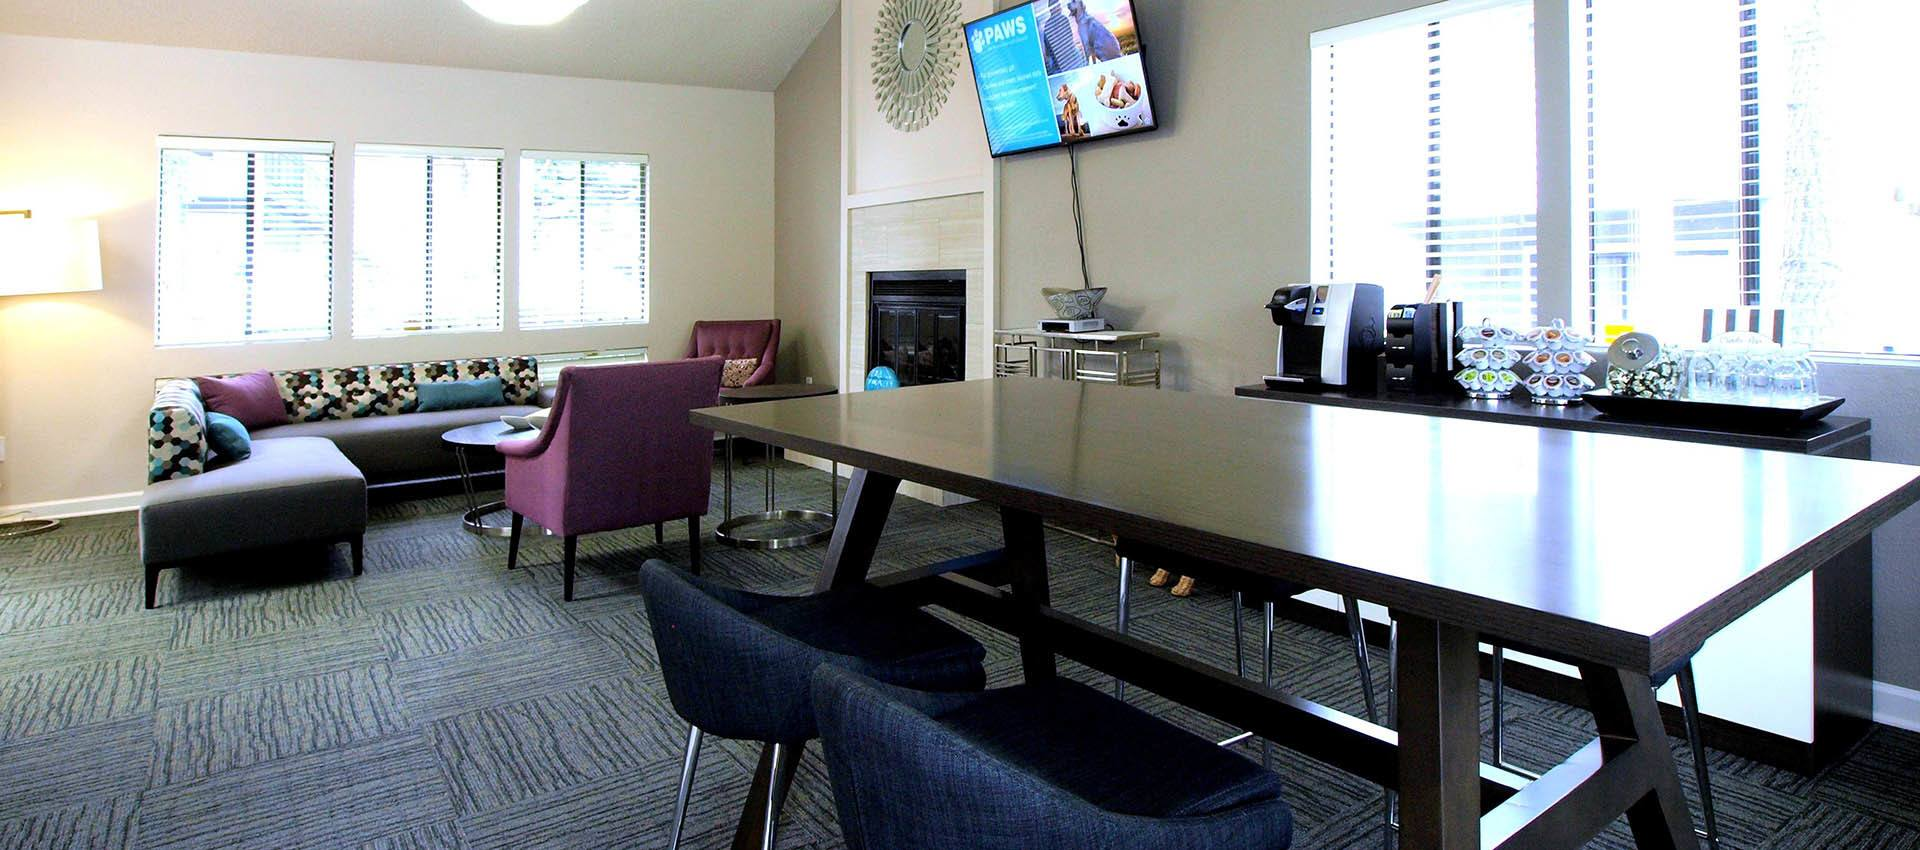 Resident Lounge at Plum Tree Apartment Homes in Martinez, CA